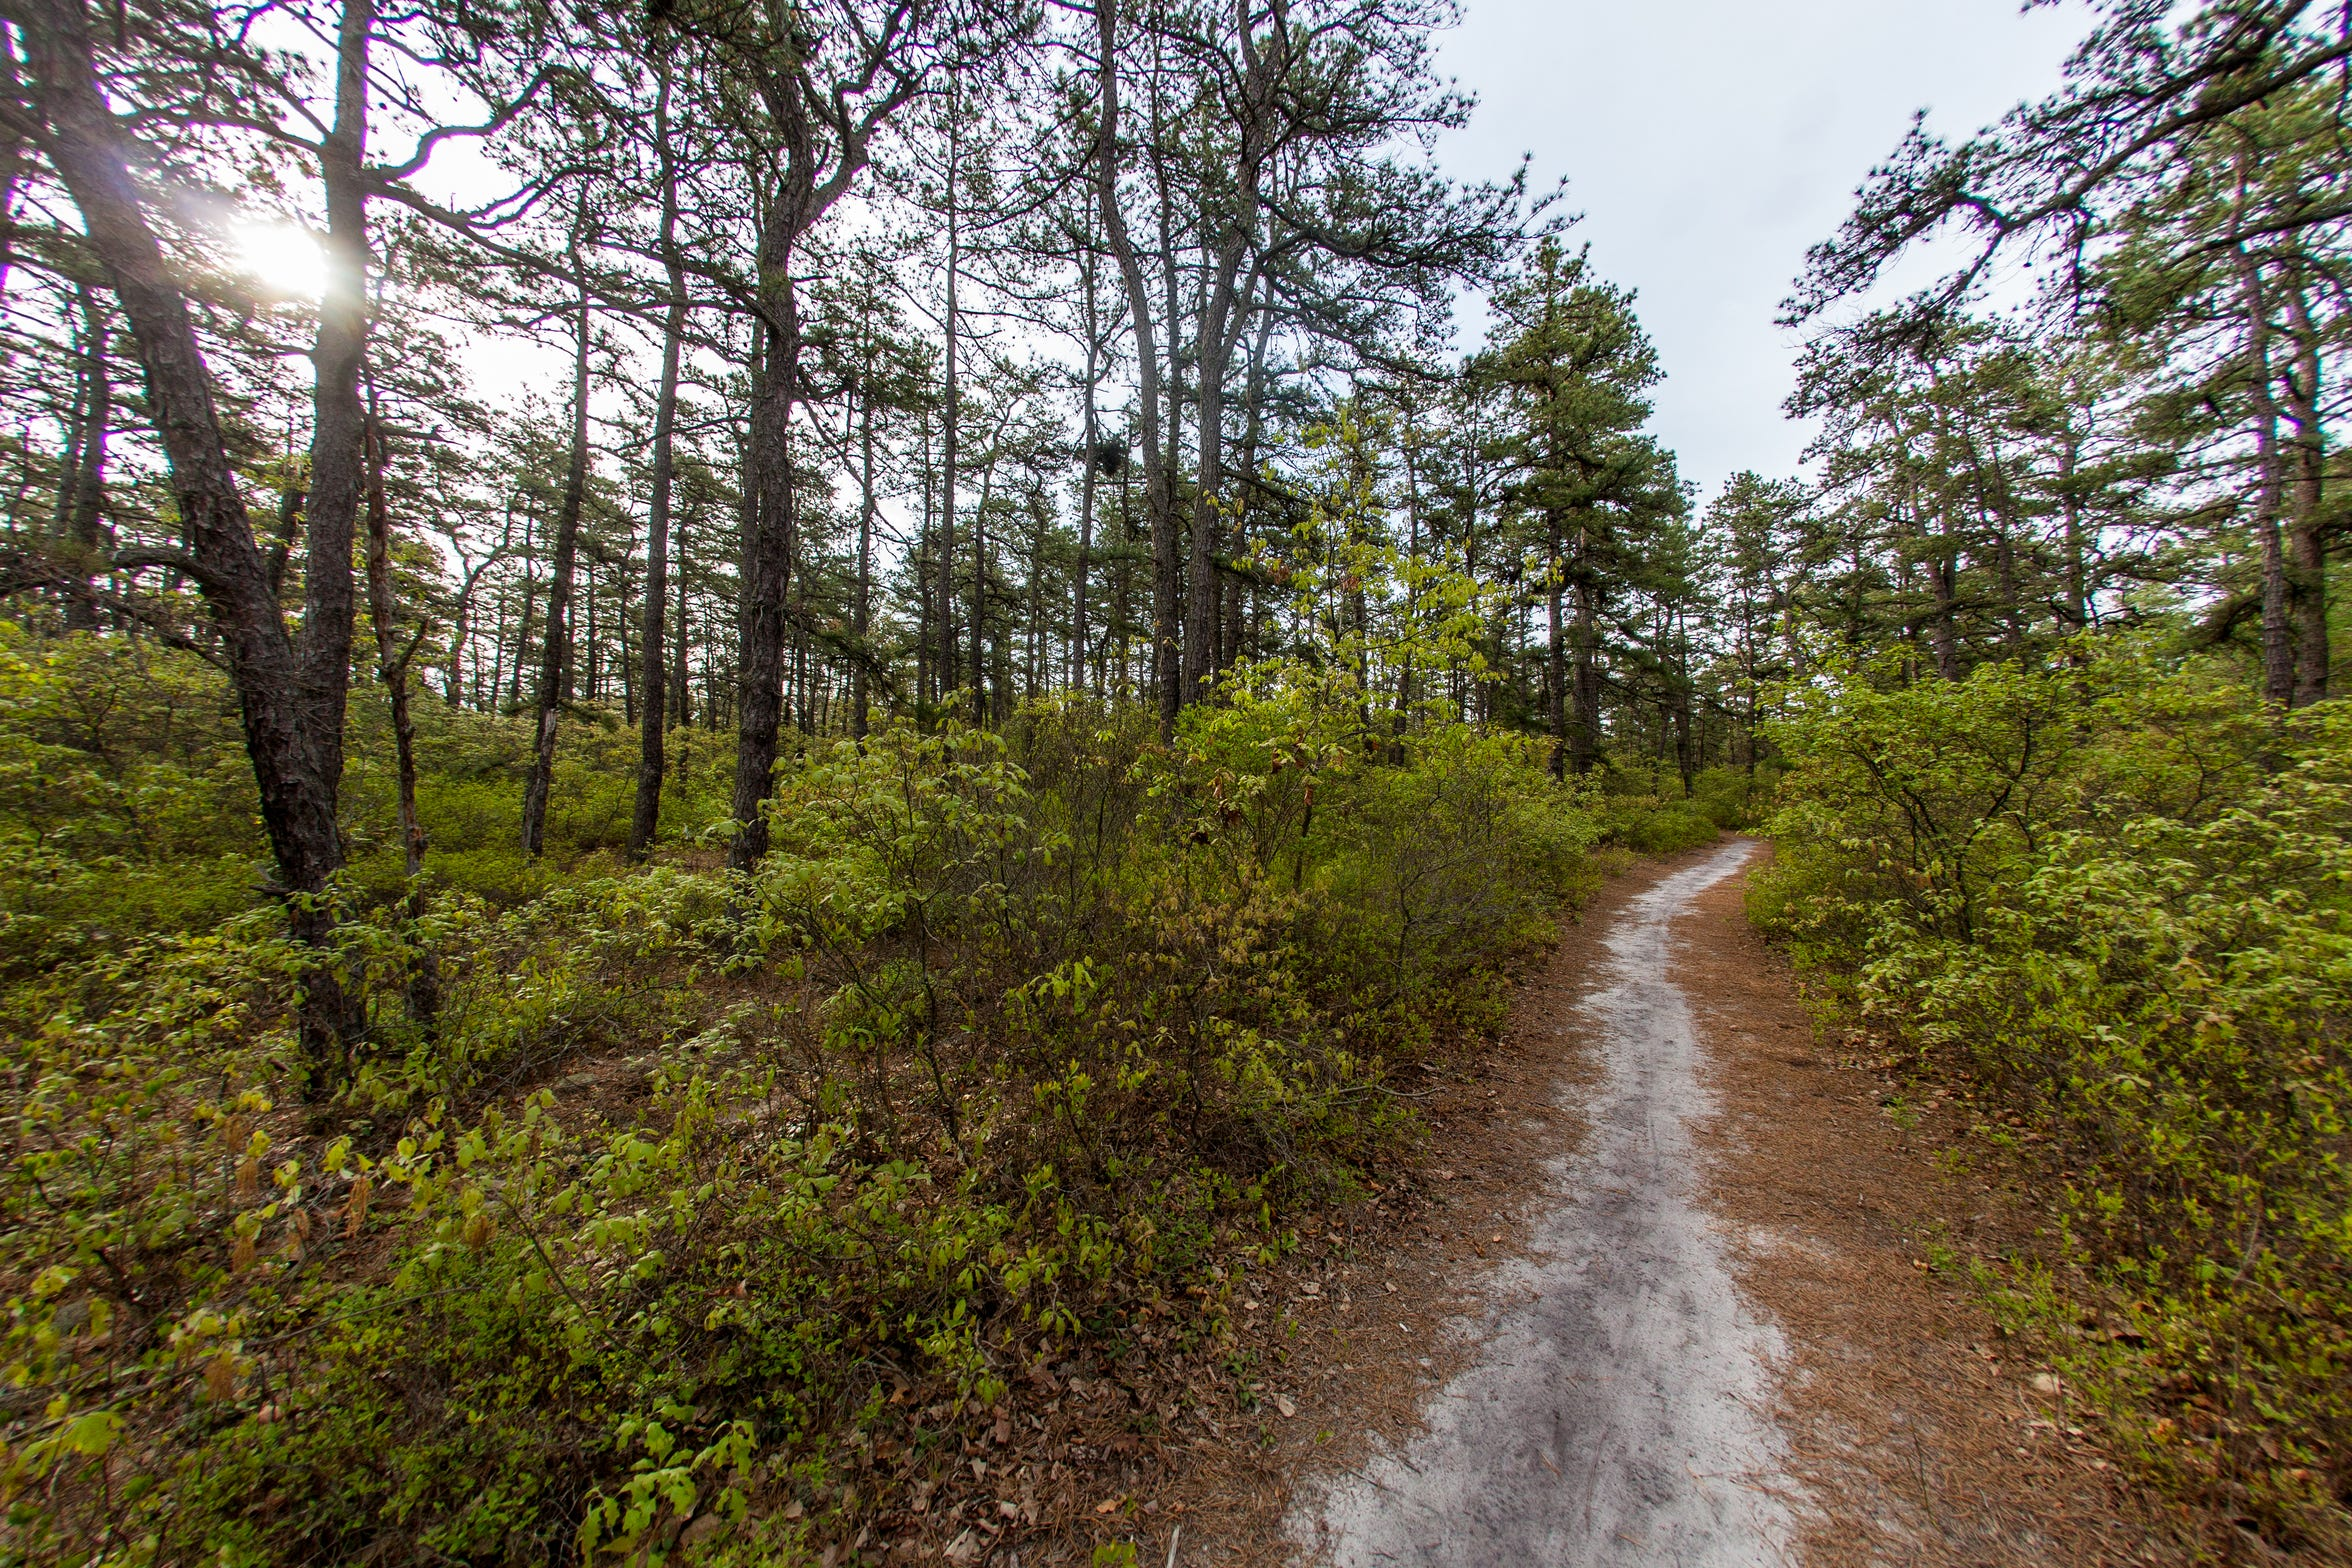 The New Jersey Pine Barrens at Jake's Branch County Park in Beachwood.